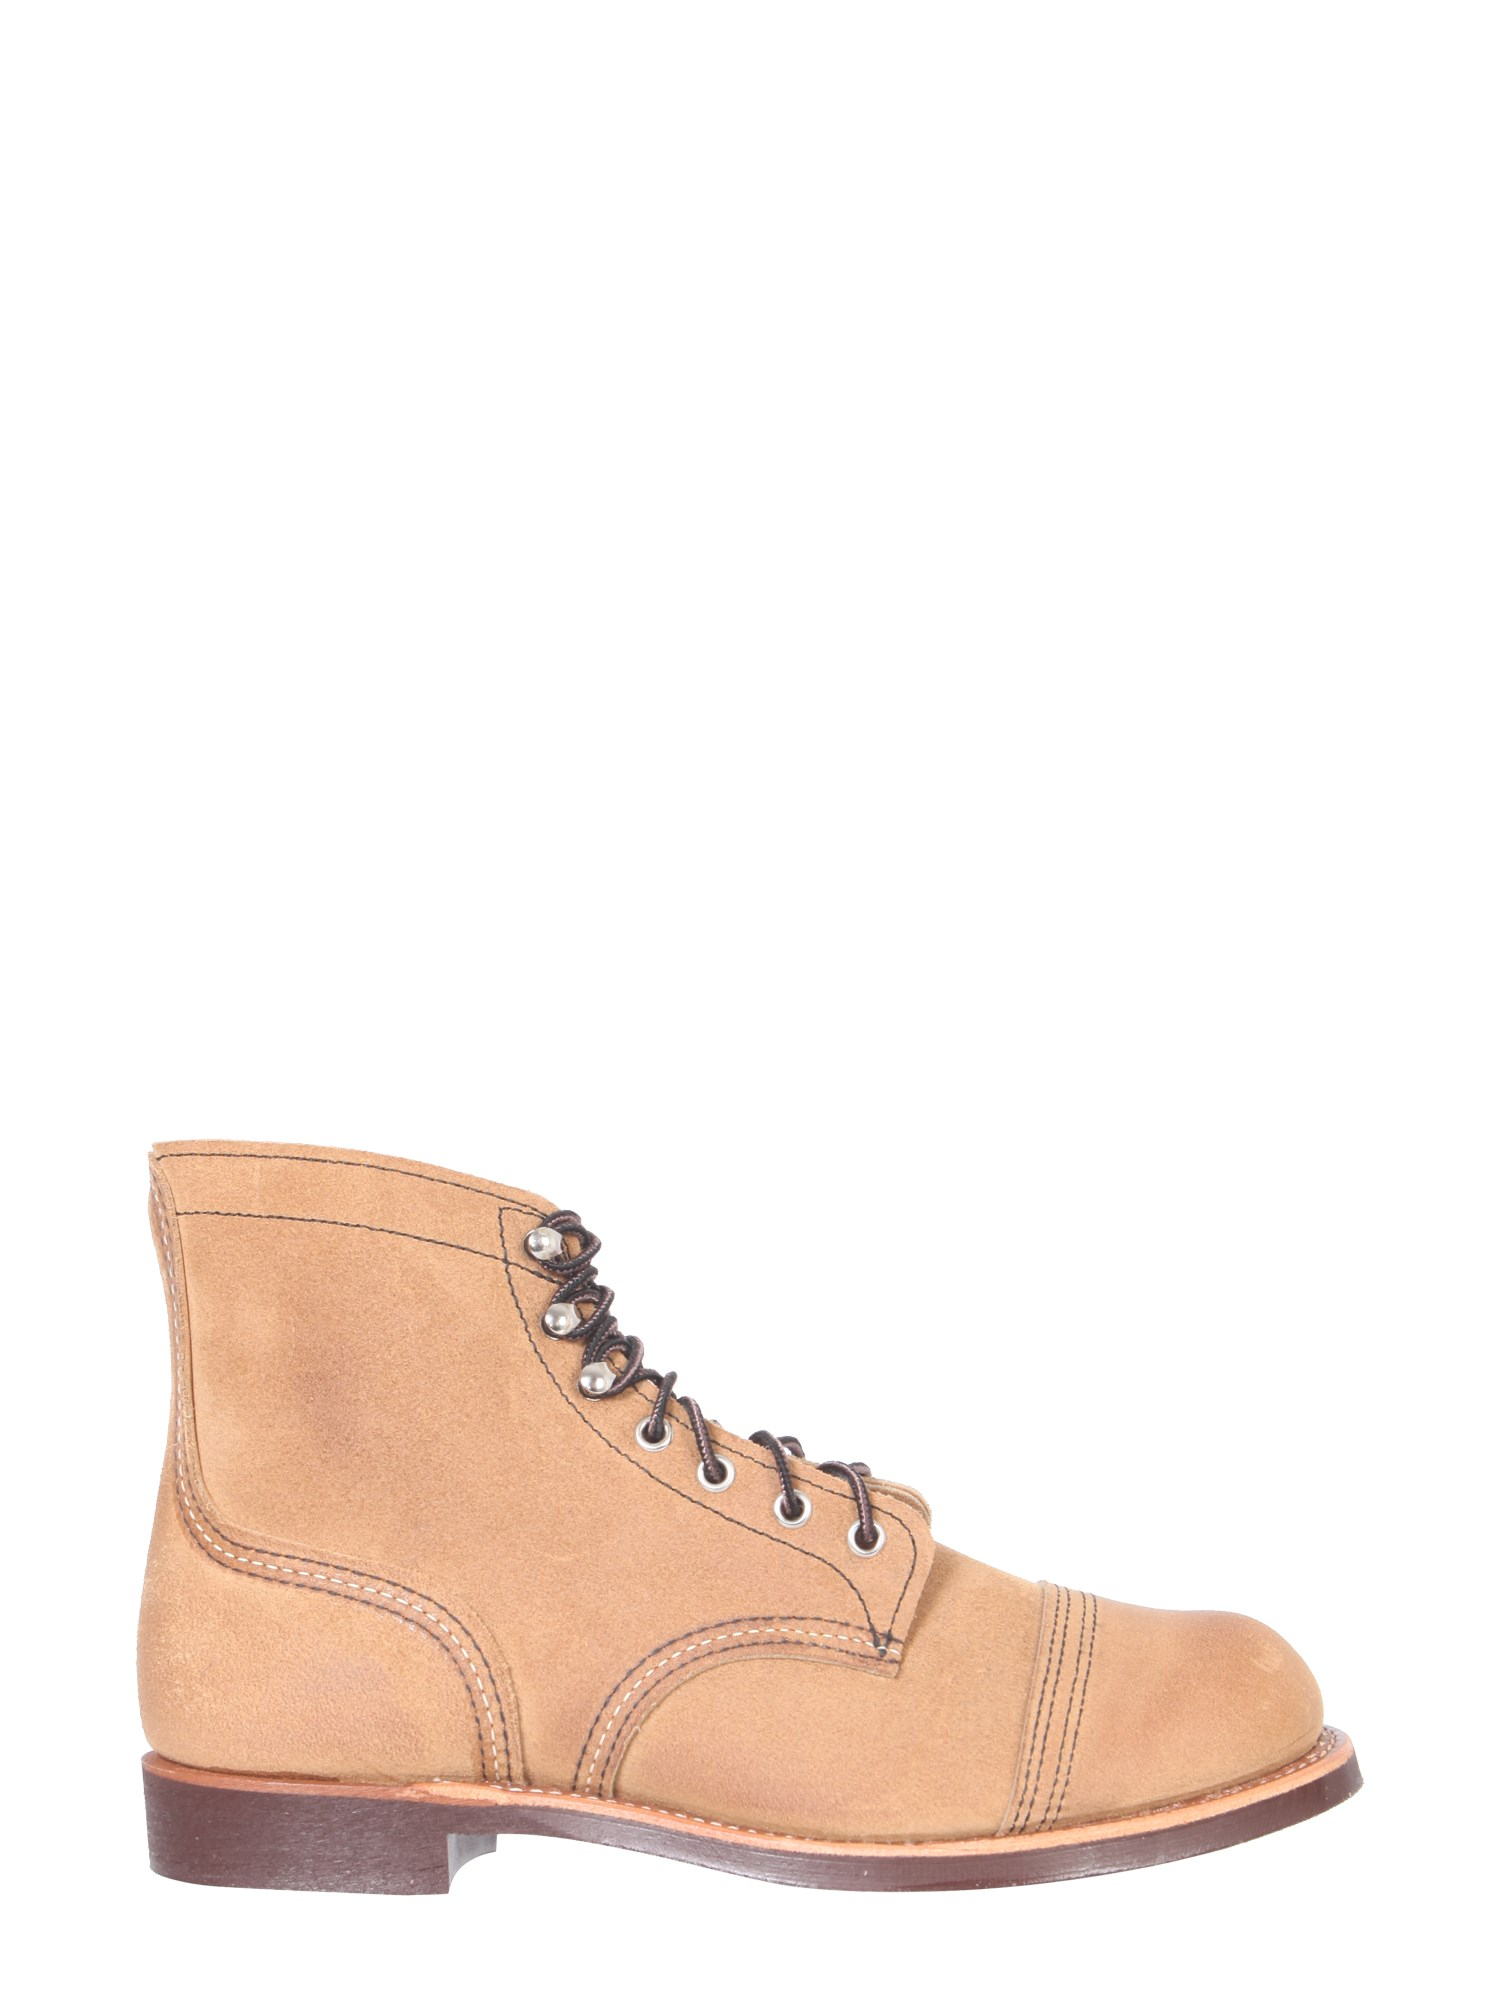 Red wing iron ranger lace-up boots - red wing - Modalova